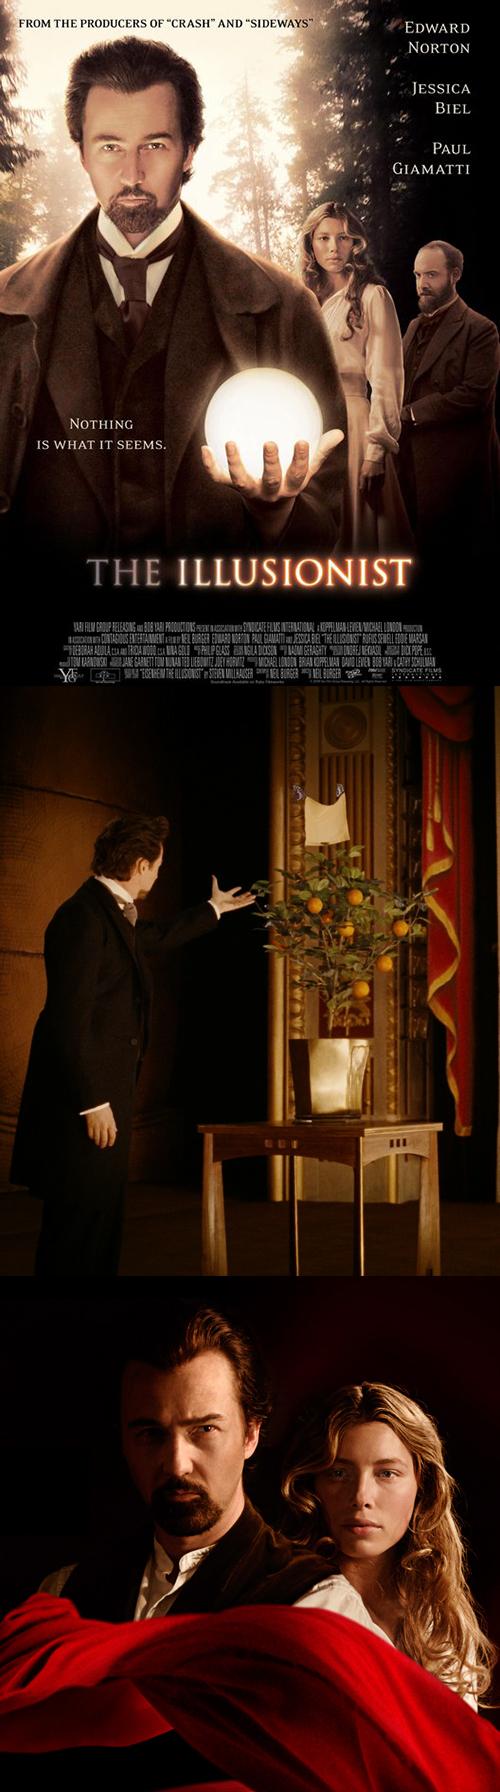 The Illusionist (2006) • Director Neil Burger • Writers